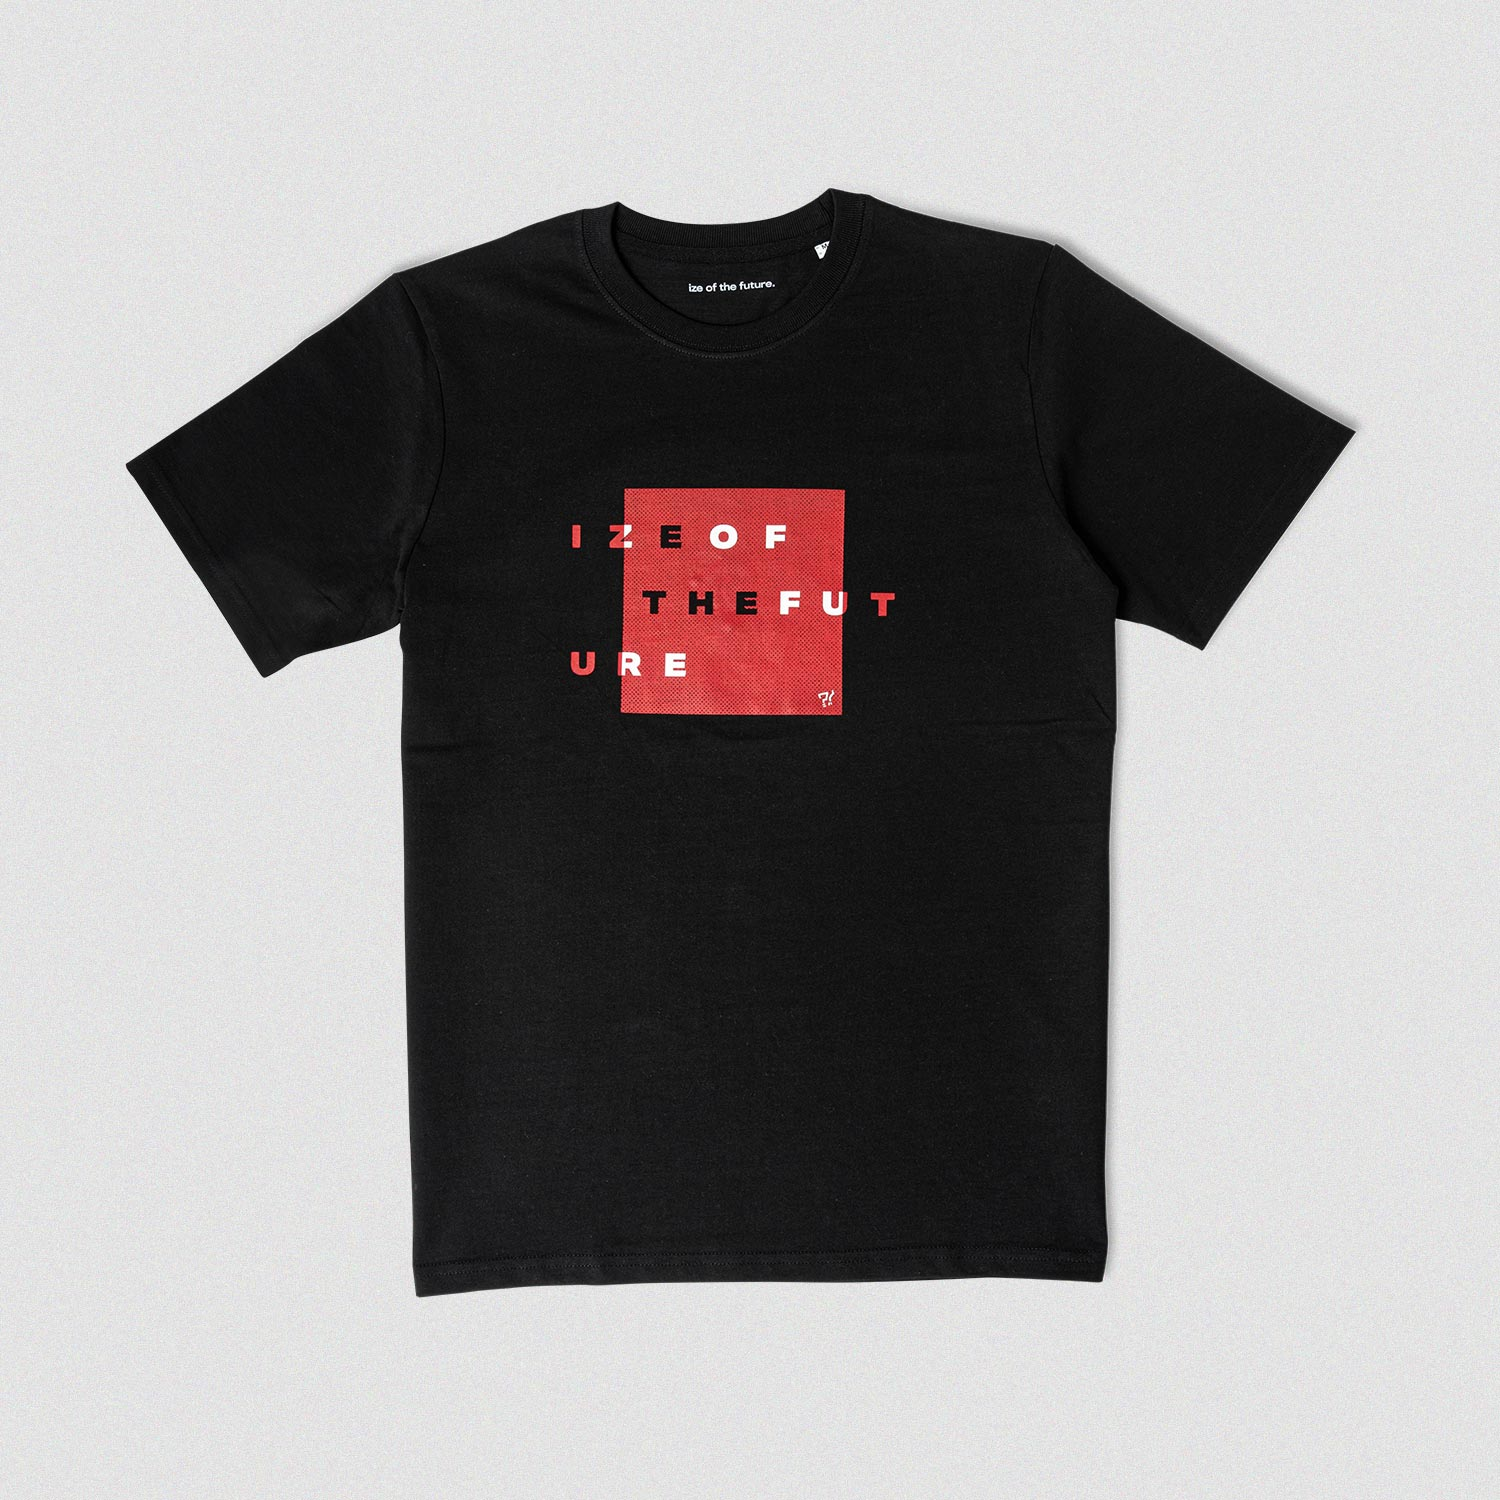 Black t-shirt with red and white graphic